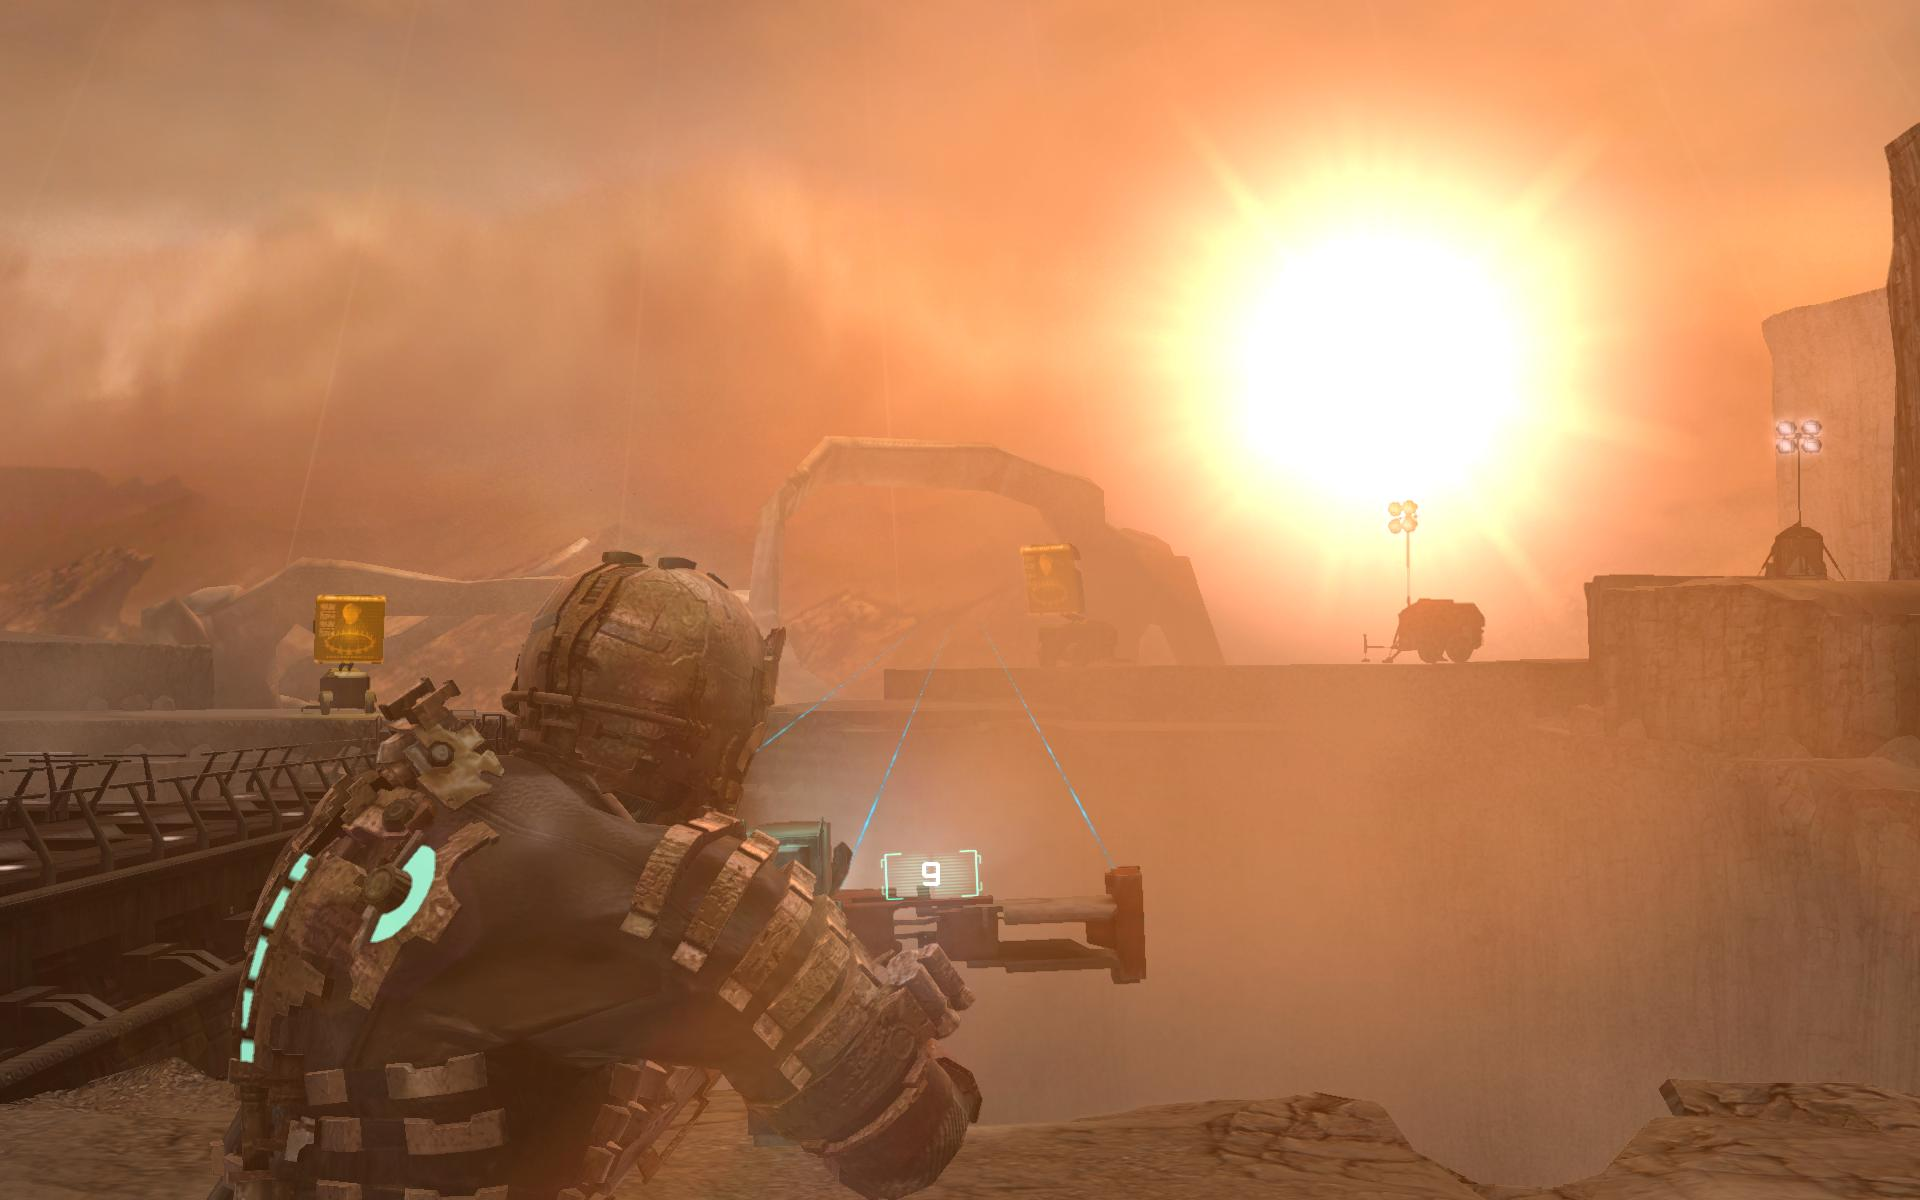 dead-space-2011-01-30-17-31-35-89